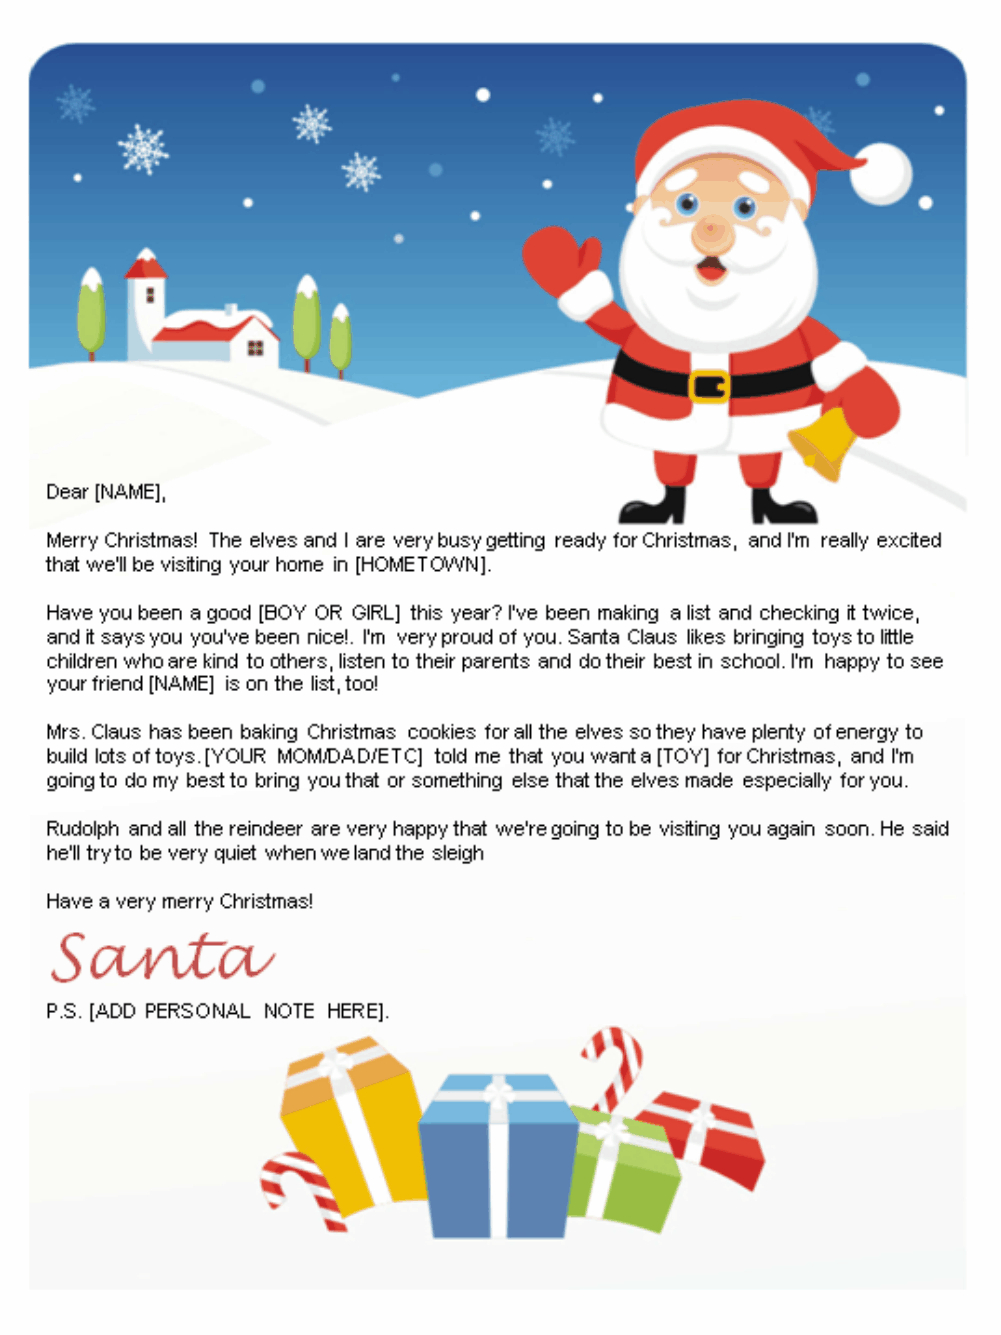 Free Letters From Santa   Santa Letters To Print At Home - Gifts - Free Printable Letter From Santa Template